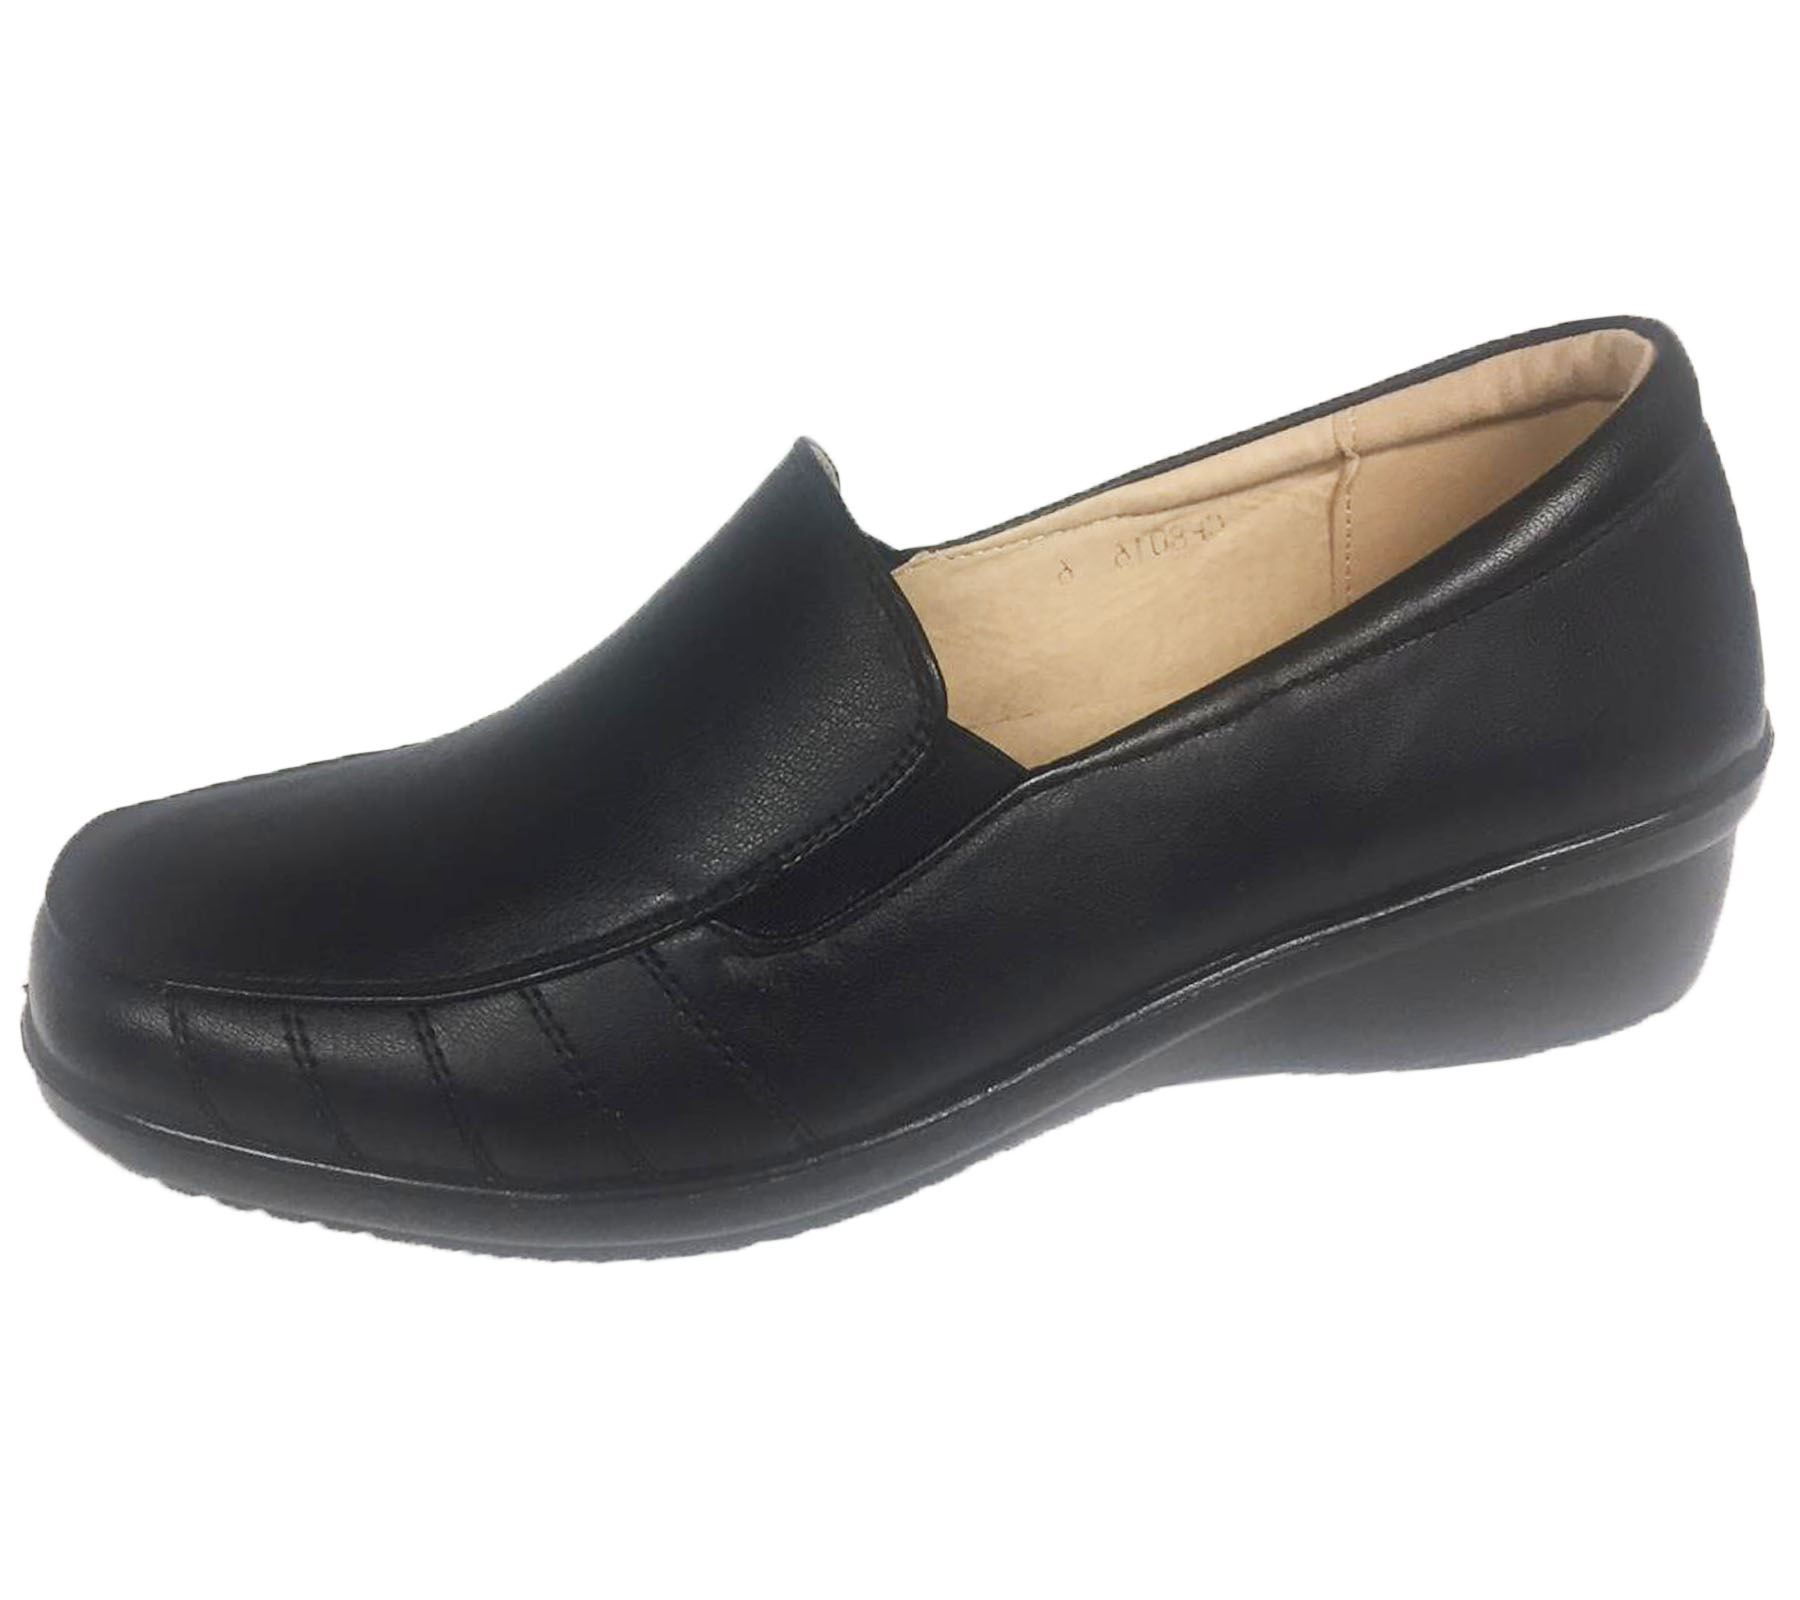 Ladies-Loafer-Moccasin-Womens-Casual-Comfort-Walk-Pumps-Slip-On-Shoes thumbnail 5